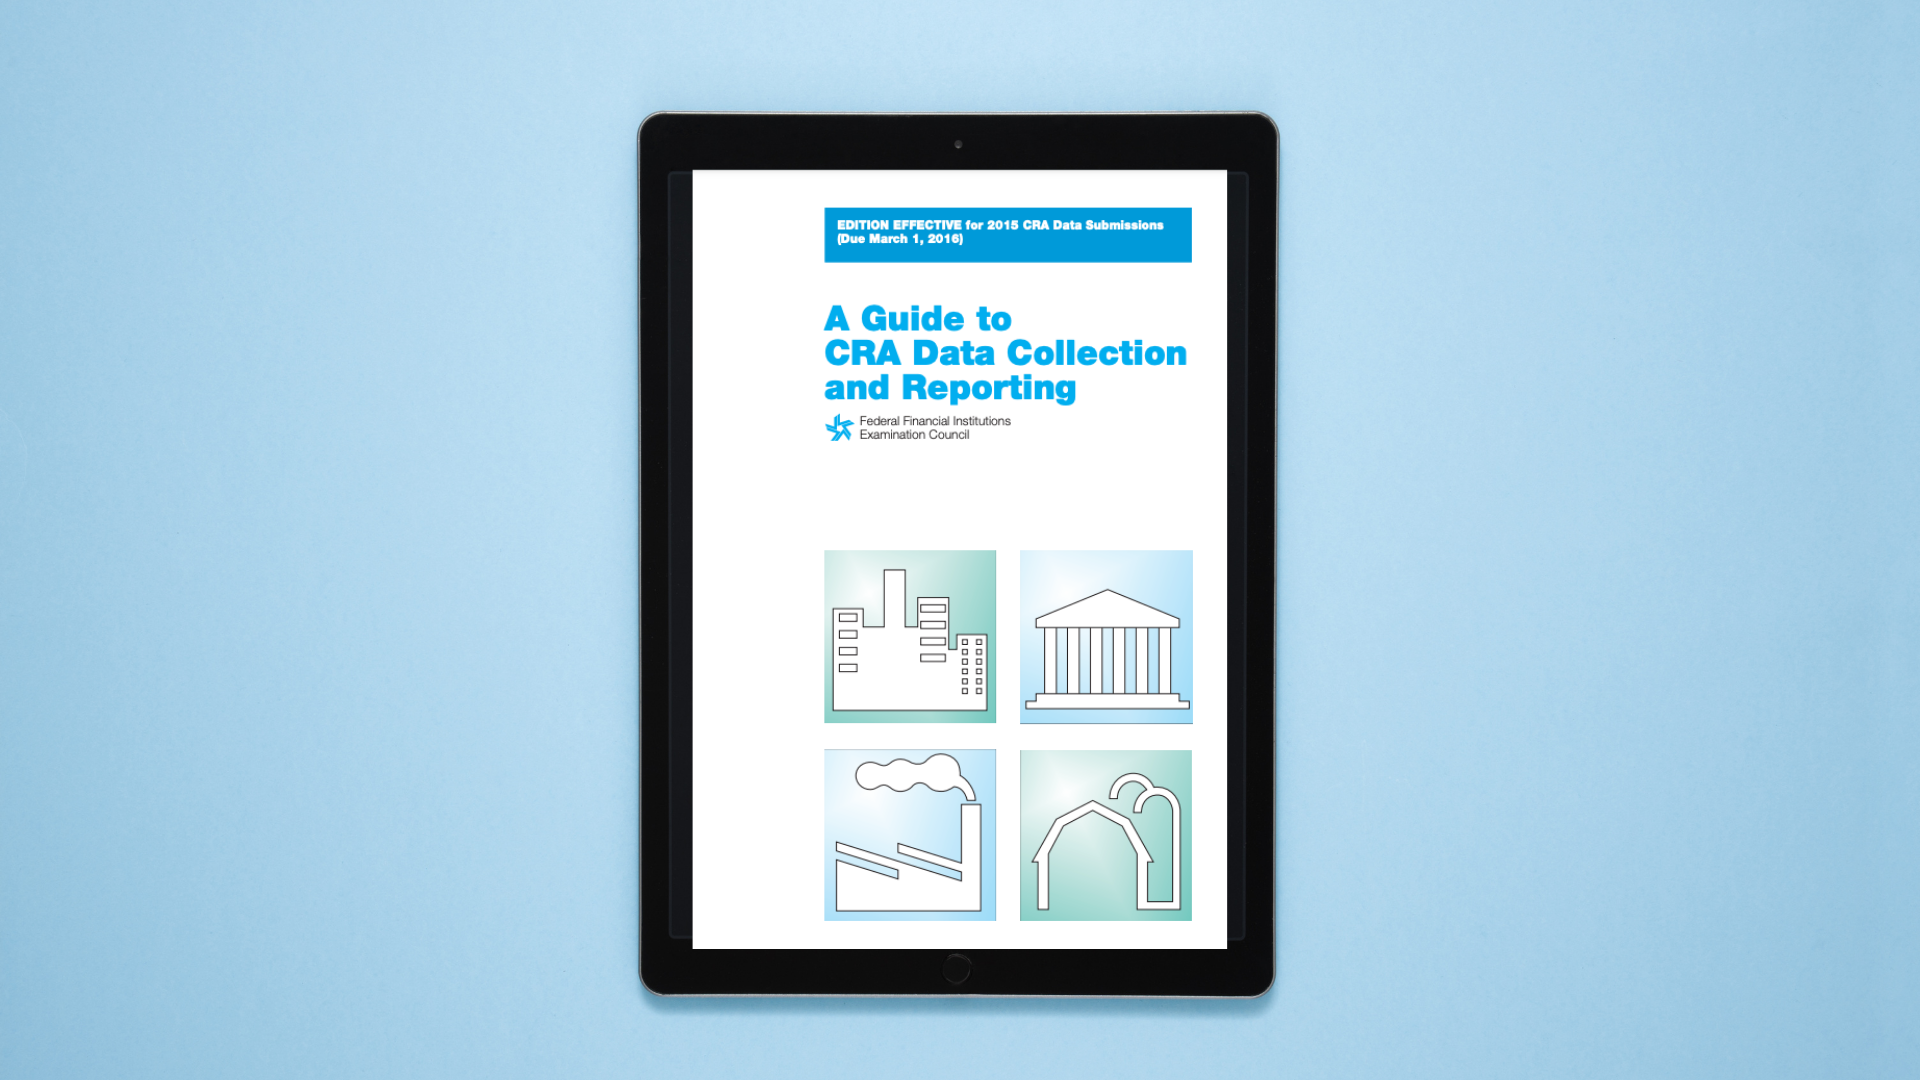 A guide to CRA Data Collection and reporting